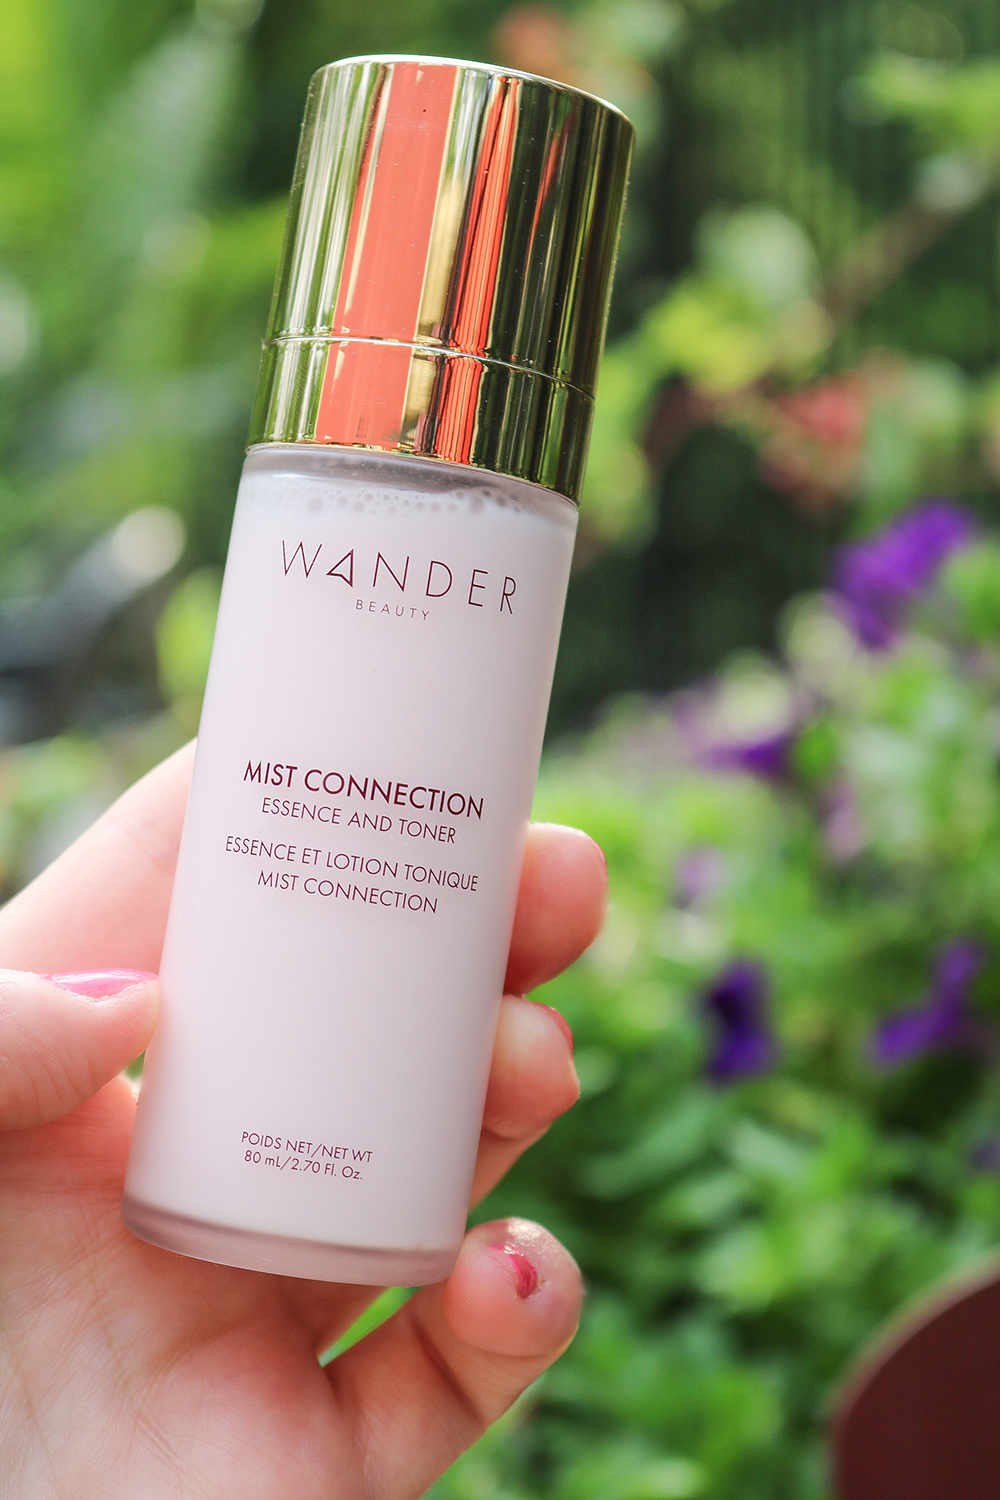 Wander Beauty Mist Connection Essence and Toner I Dreaminlace.com #cleanbeauty #crueltyfree